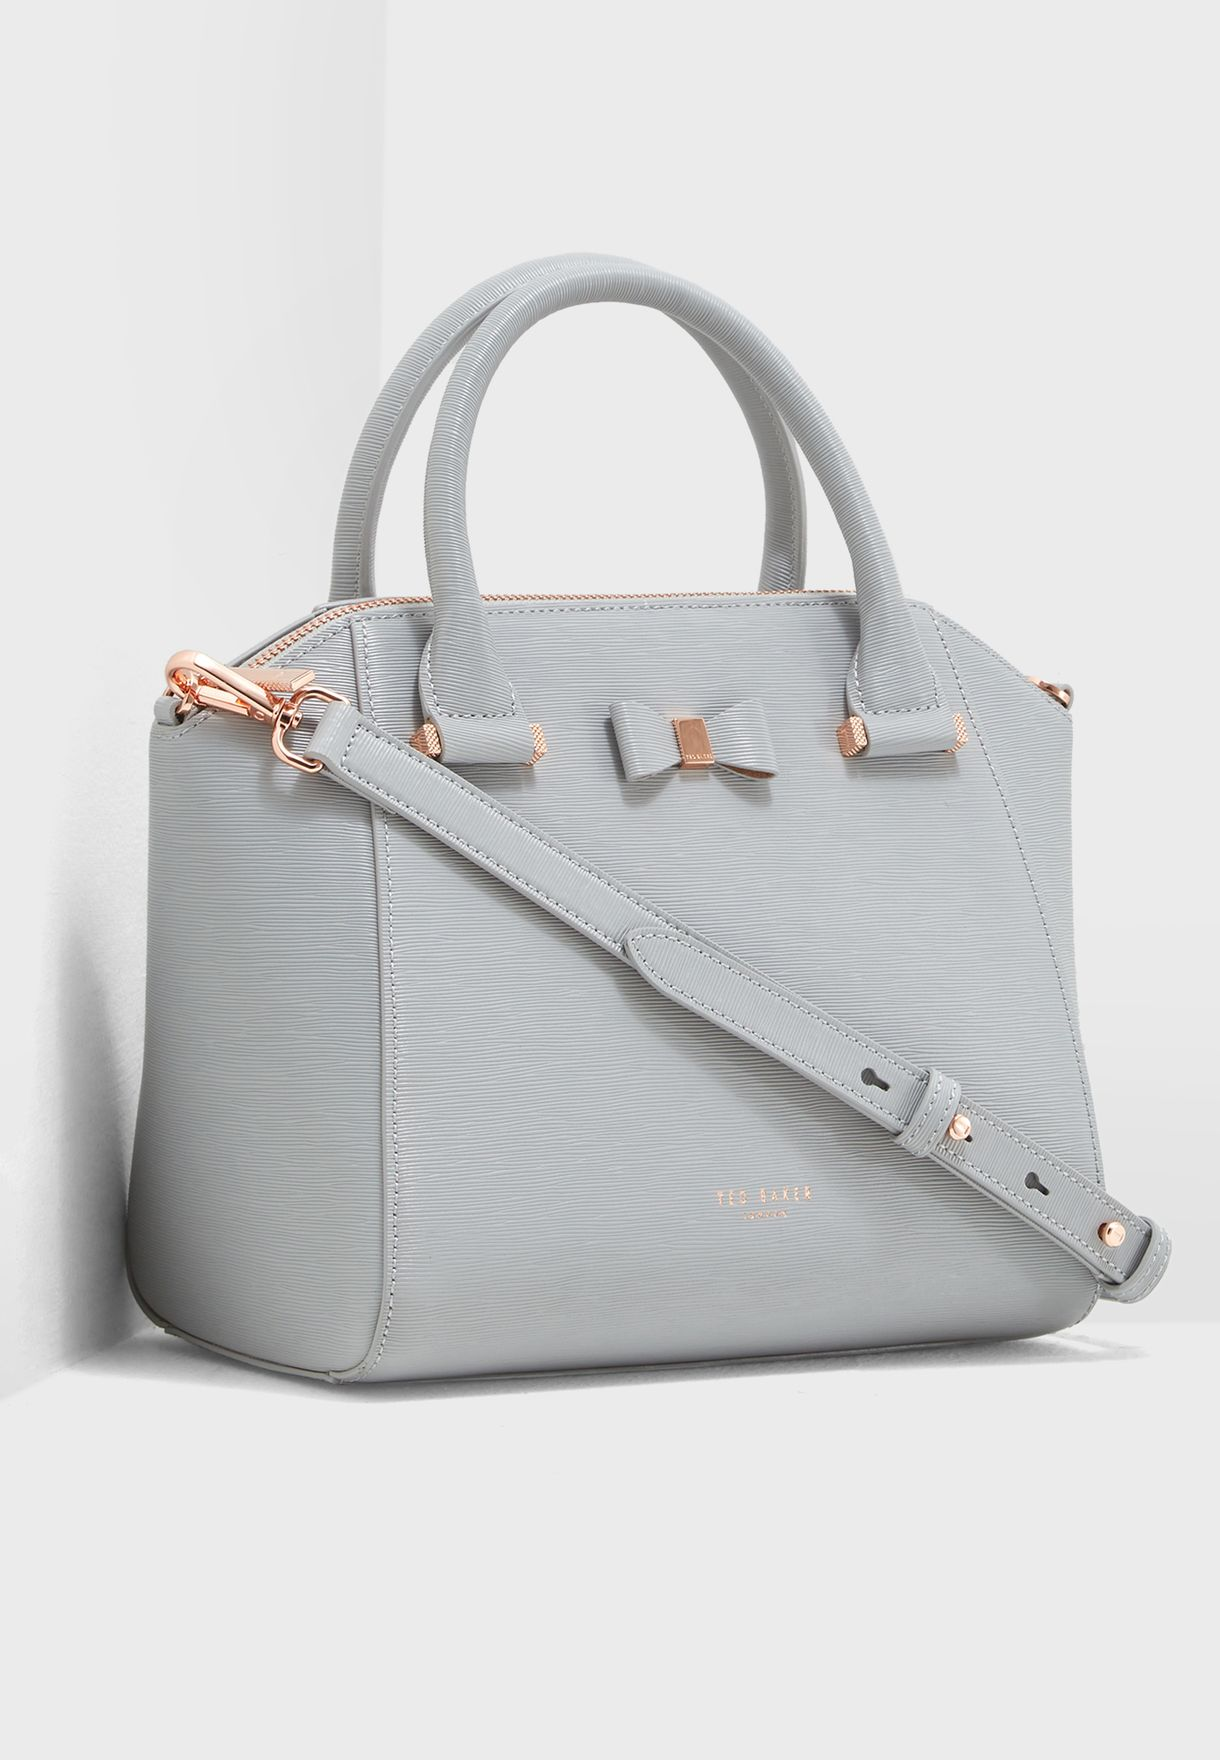 d9cb344255cf9 Shop Ted baker grey Bow detail small leather tote bag 149653 for ...